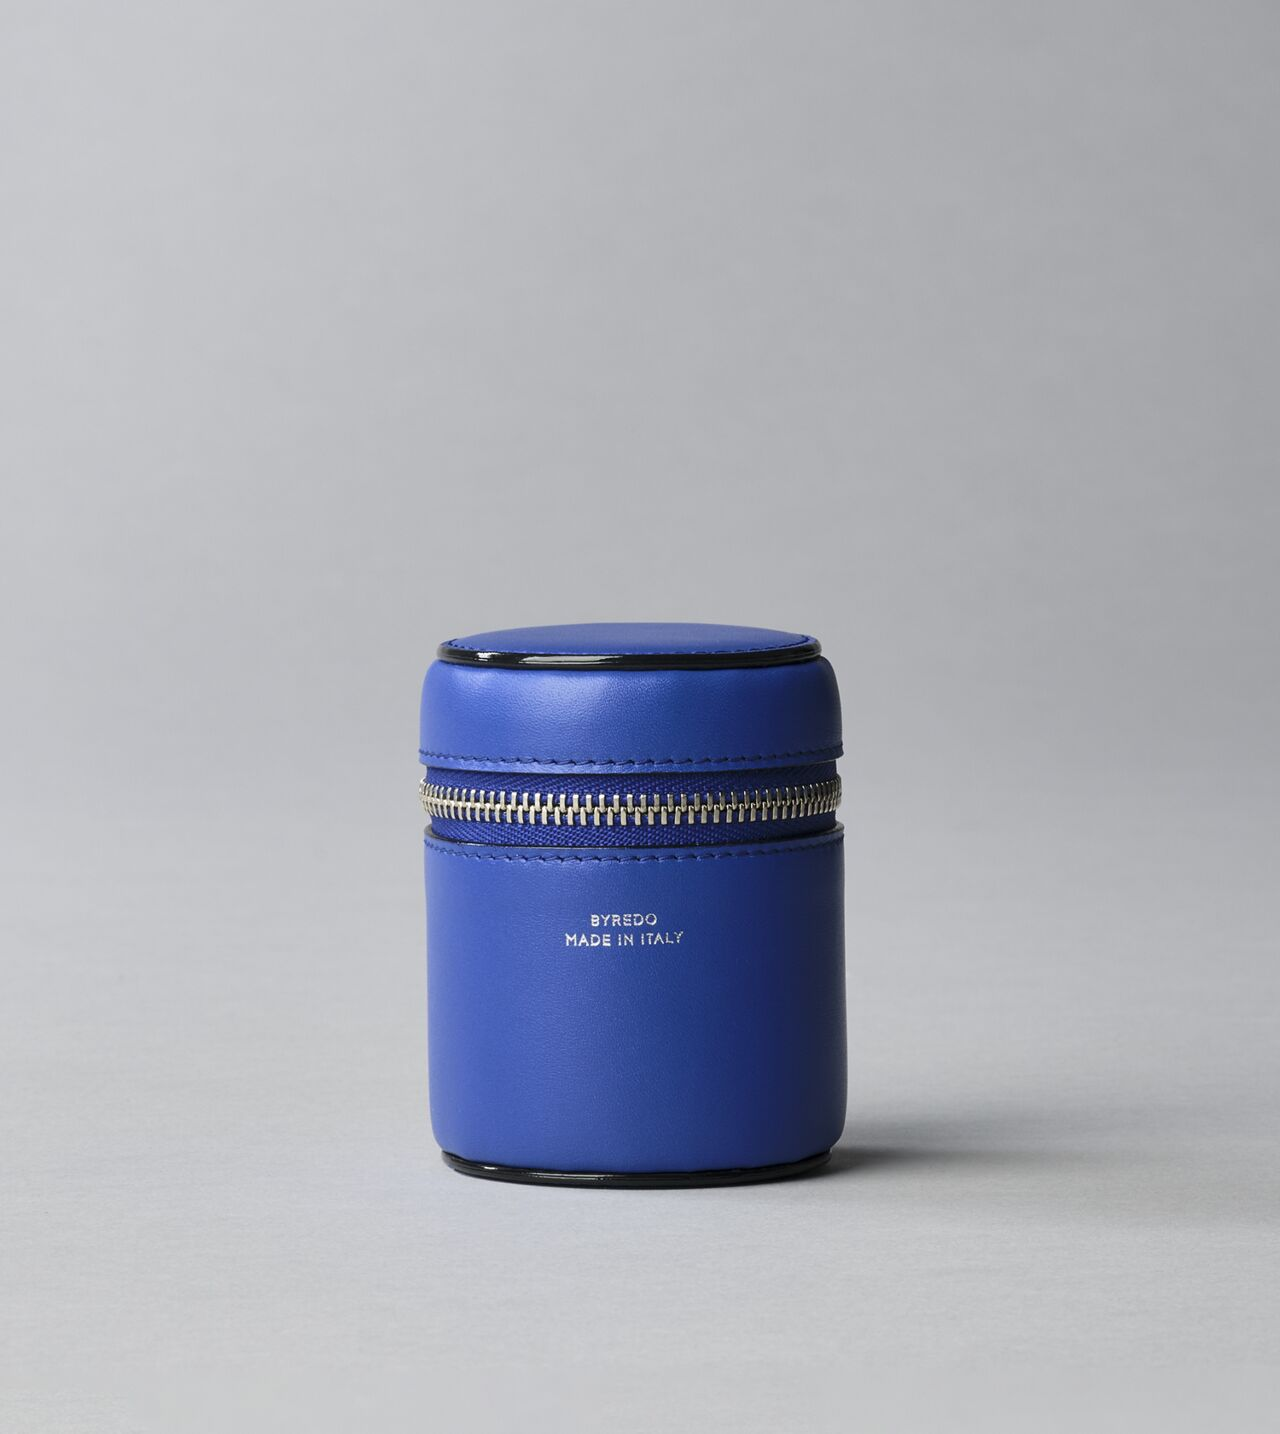 Picture of Byredo Candle holder 70g in Blue leather